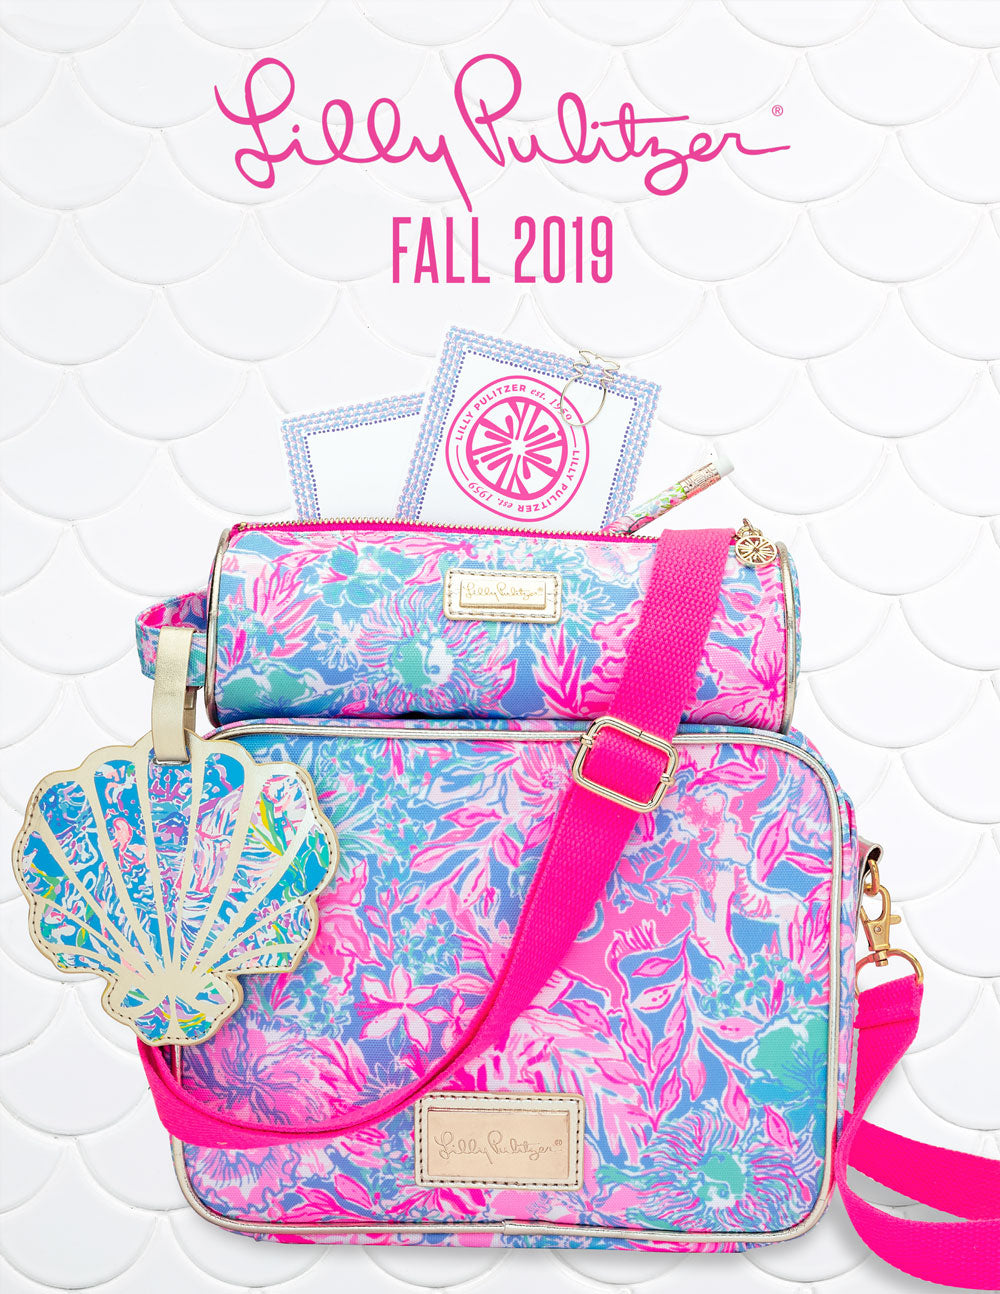 Lilly Pulitzer Fall 2019 Catalog